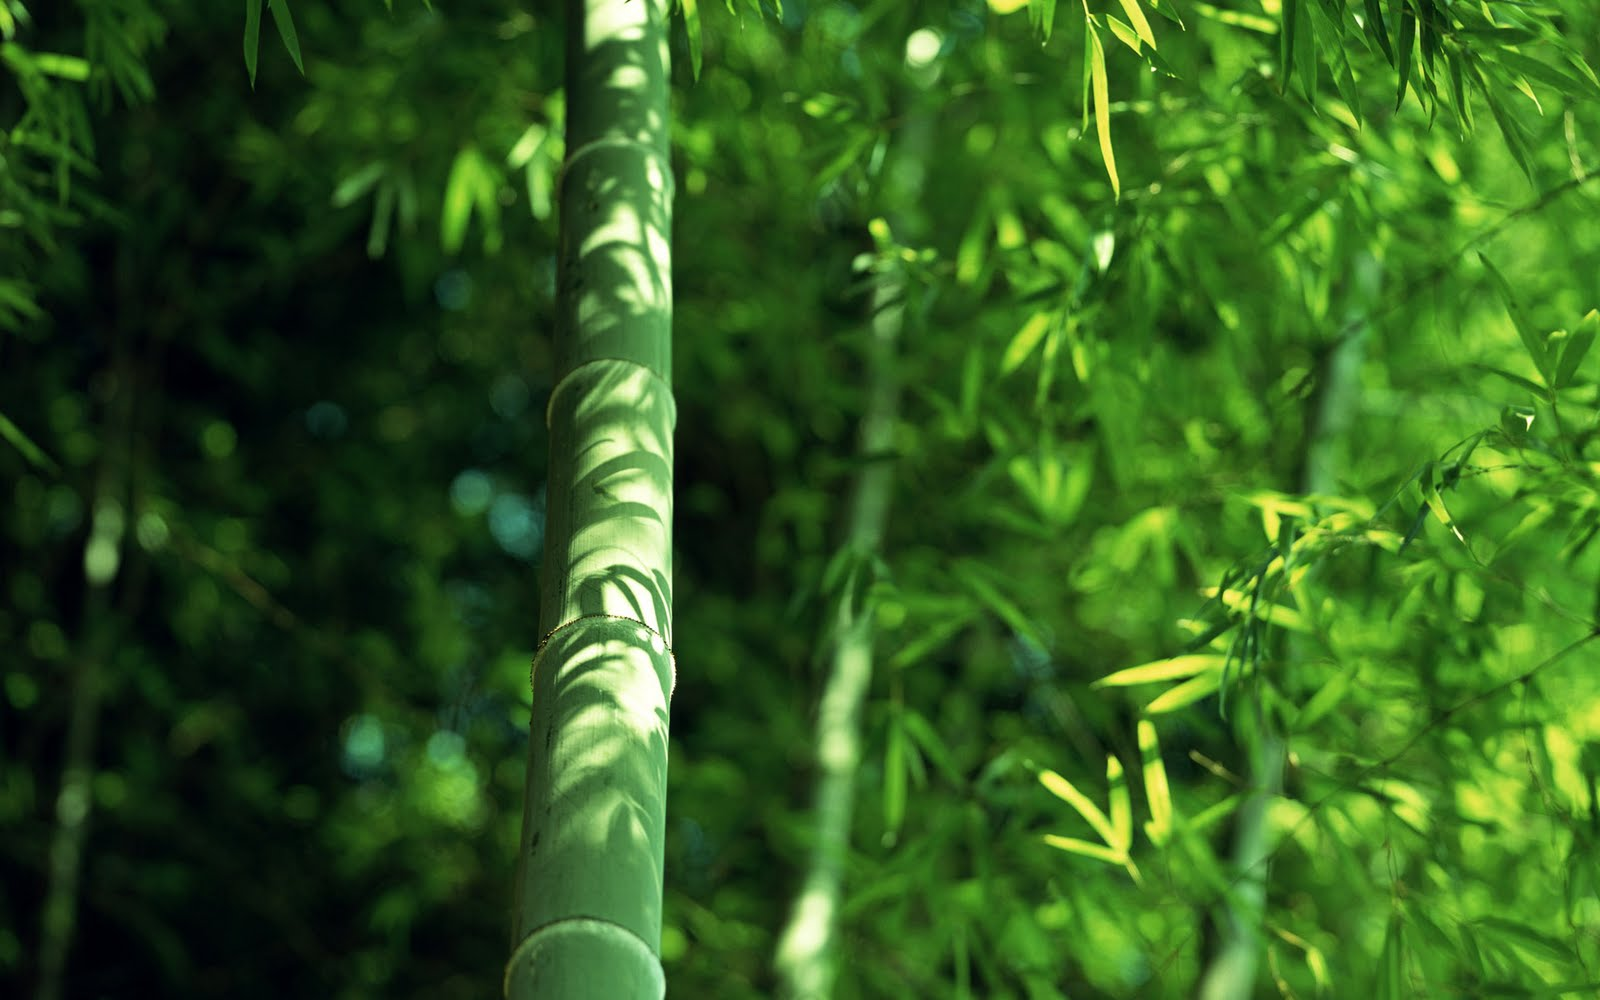 High Definition bamboo design wallpaper bamboo pattern wallpaper 1600x1000